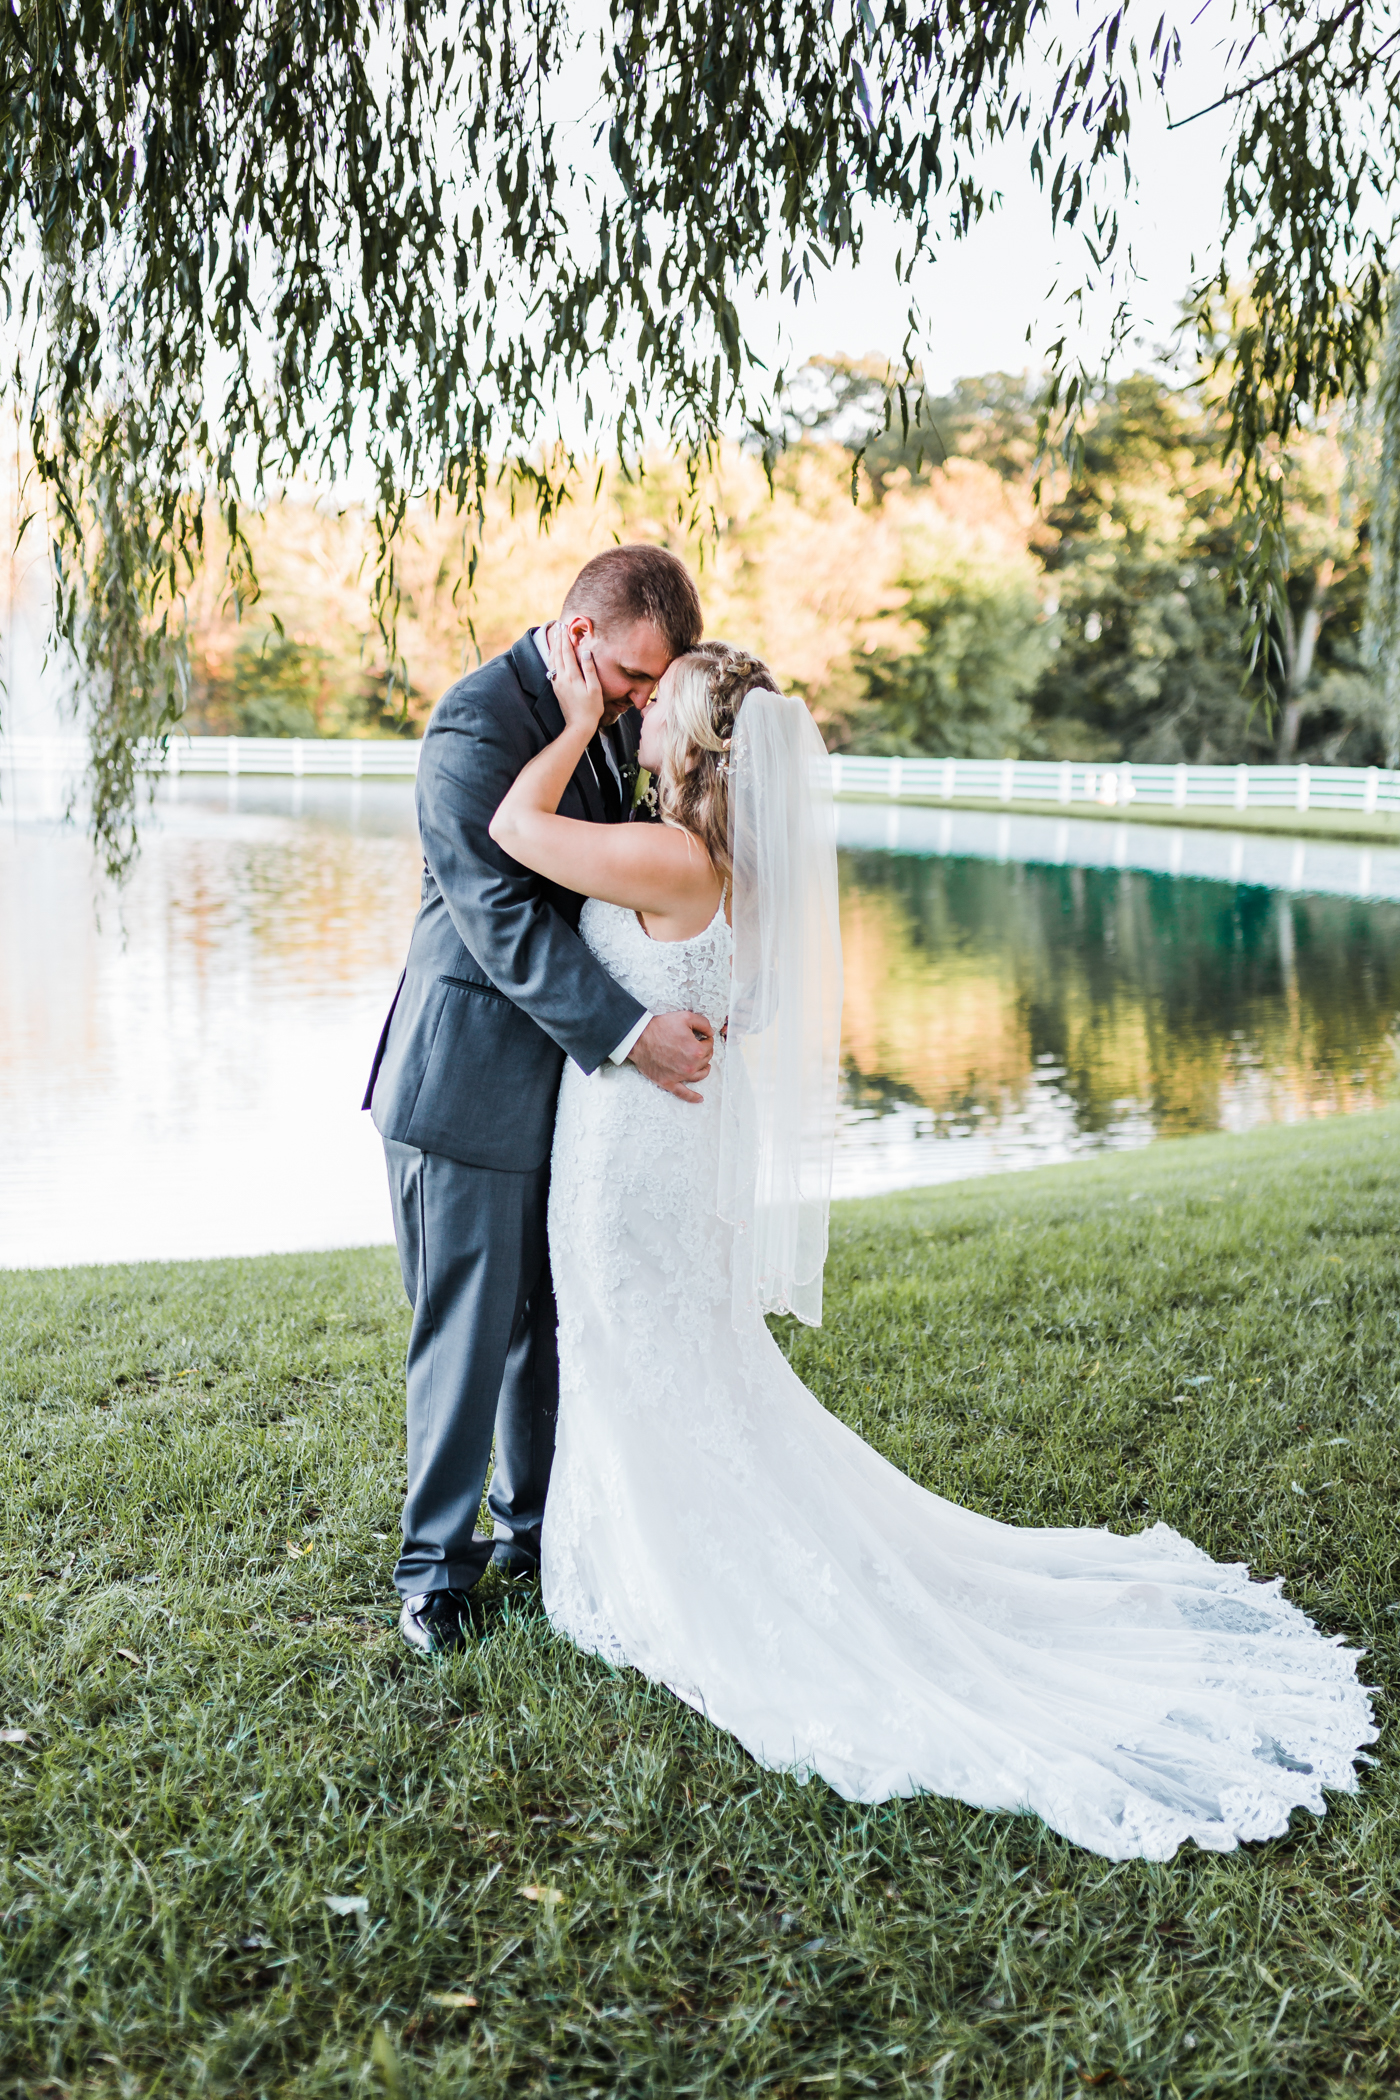 Romantic portrait of Bride and Groom by pond - Top rated MD photographer